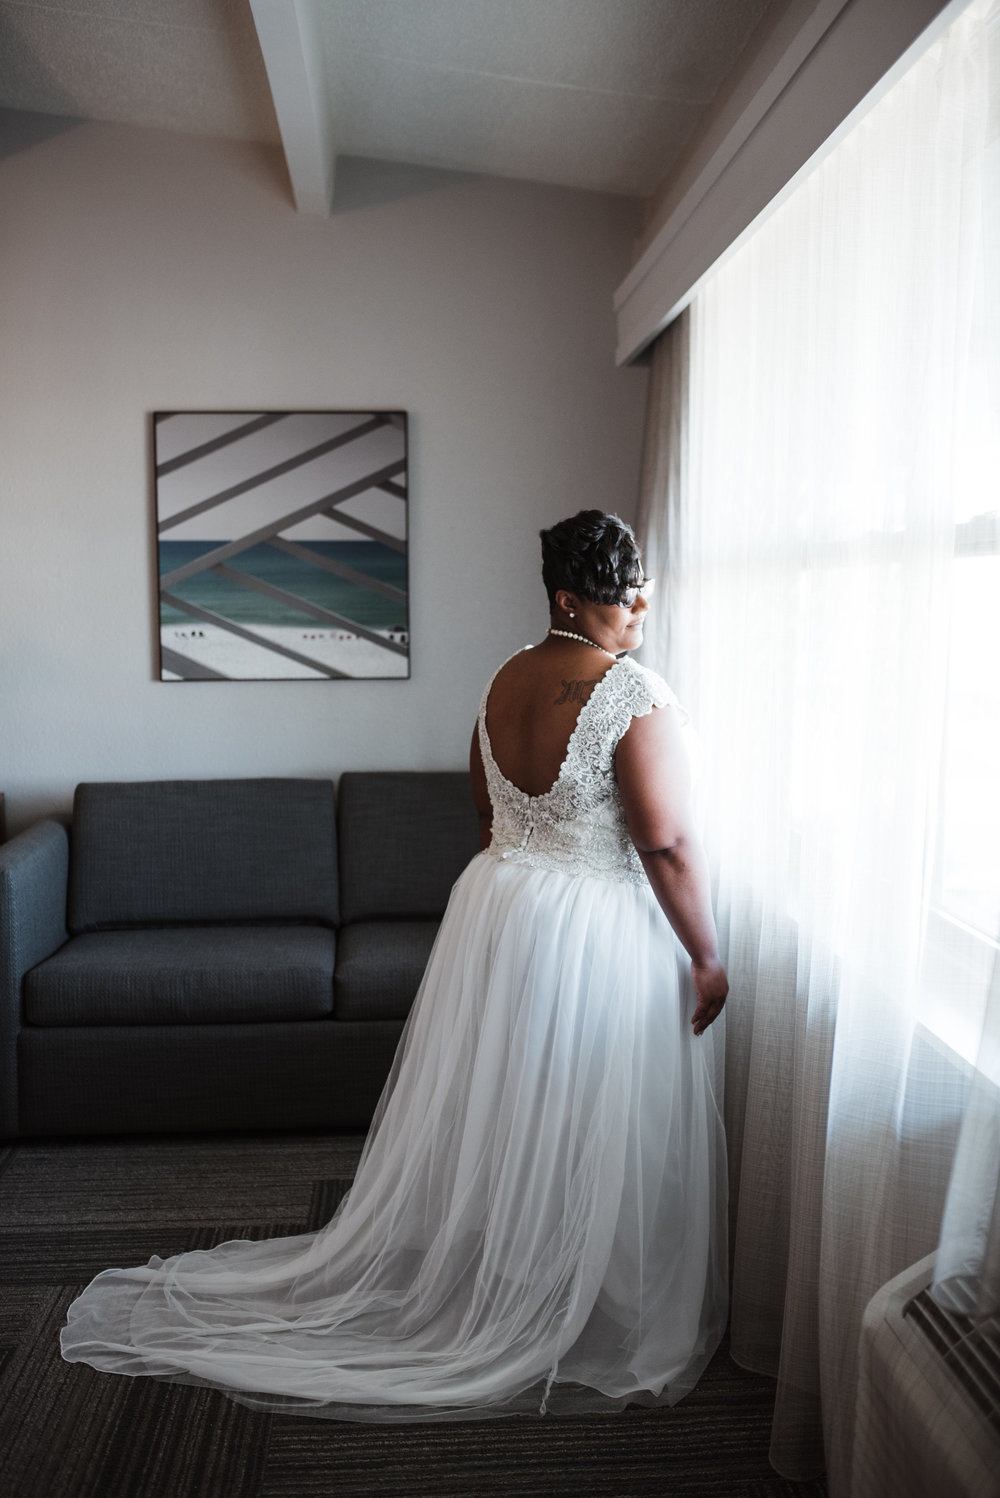 Plus Size Bride